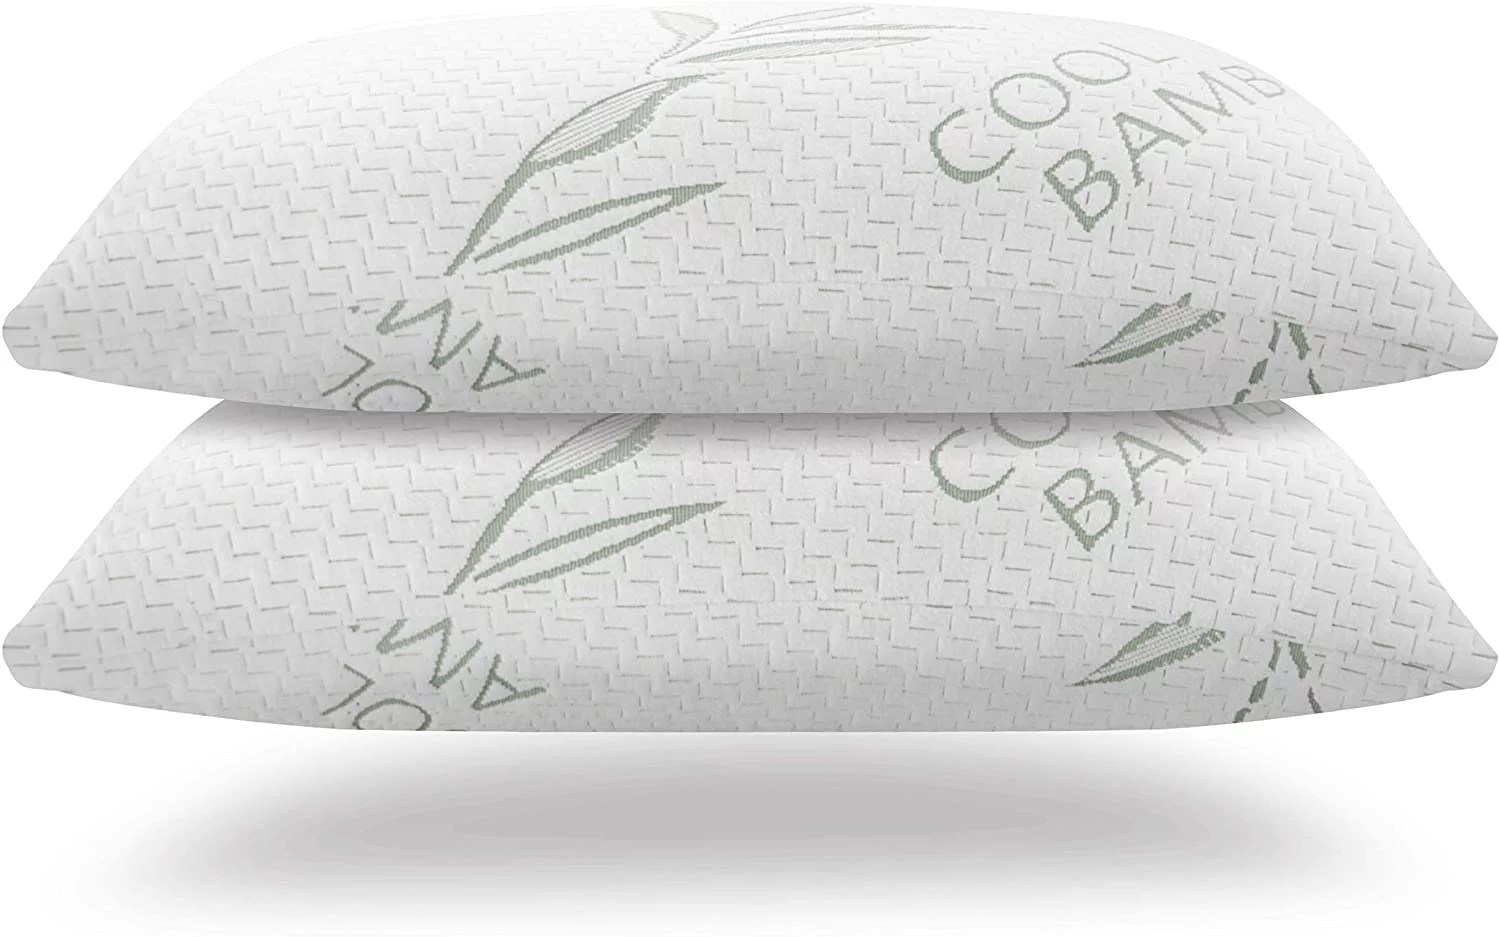 queen size bamboo pillows shredded memory foam adjustable bamboo pillow hypoallergenic antibacterial removable washable bamboo cover queen size